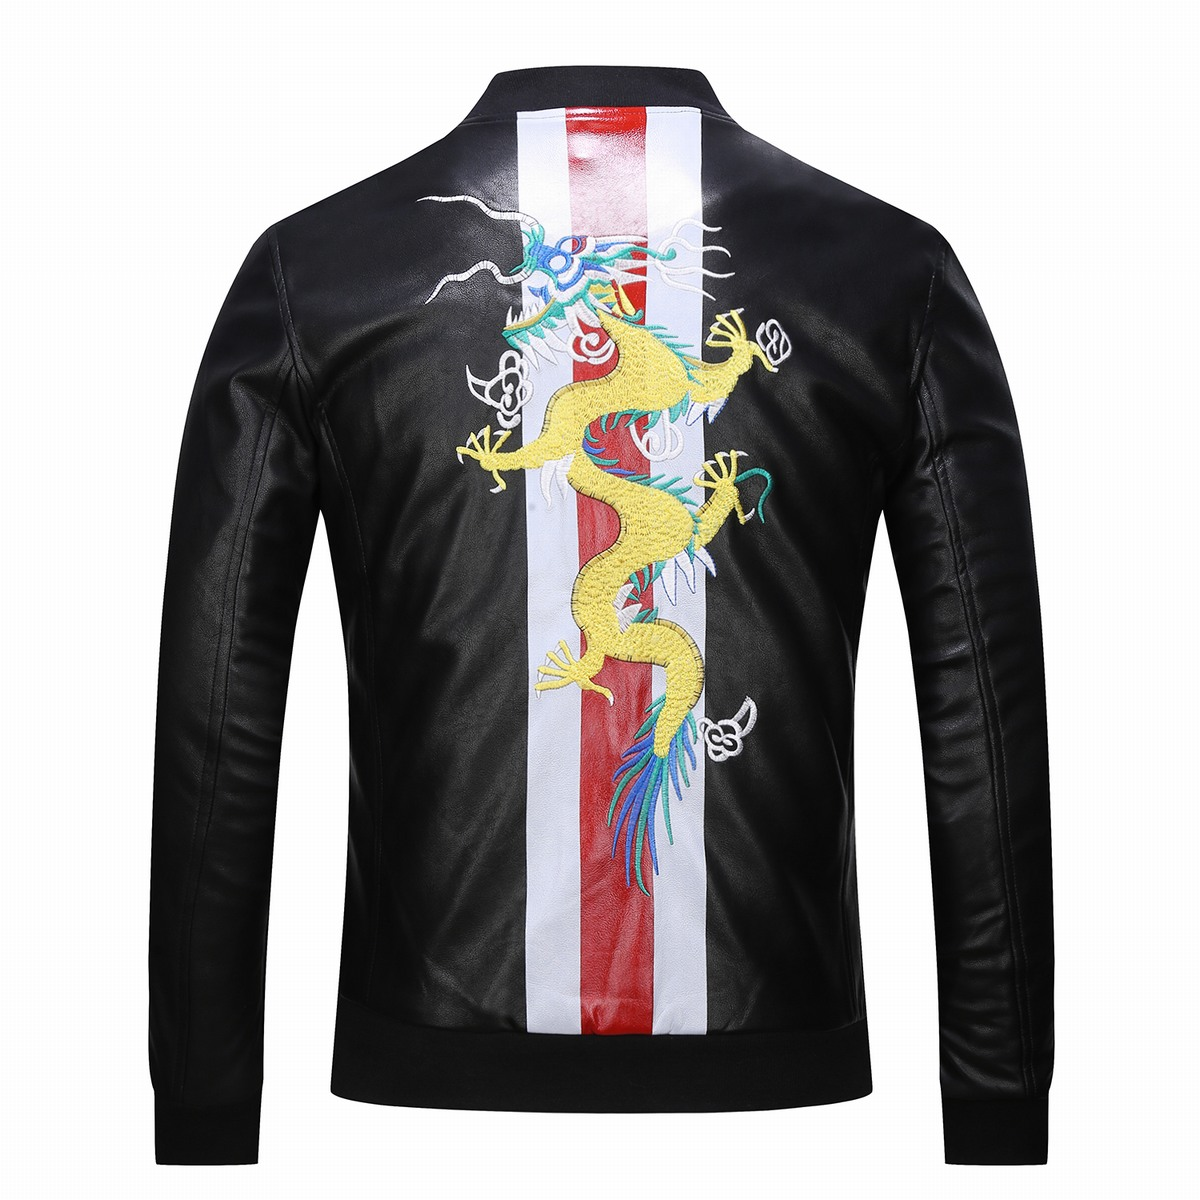 Glorious Prototype Alex Mercer Black Leather Jacket Coat Dragon Embroidery Mens Jacket Cosplay A Brother Coat Leather Jacket Sweater Men's Costumes